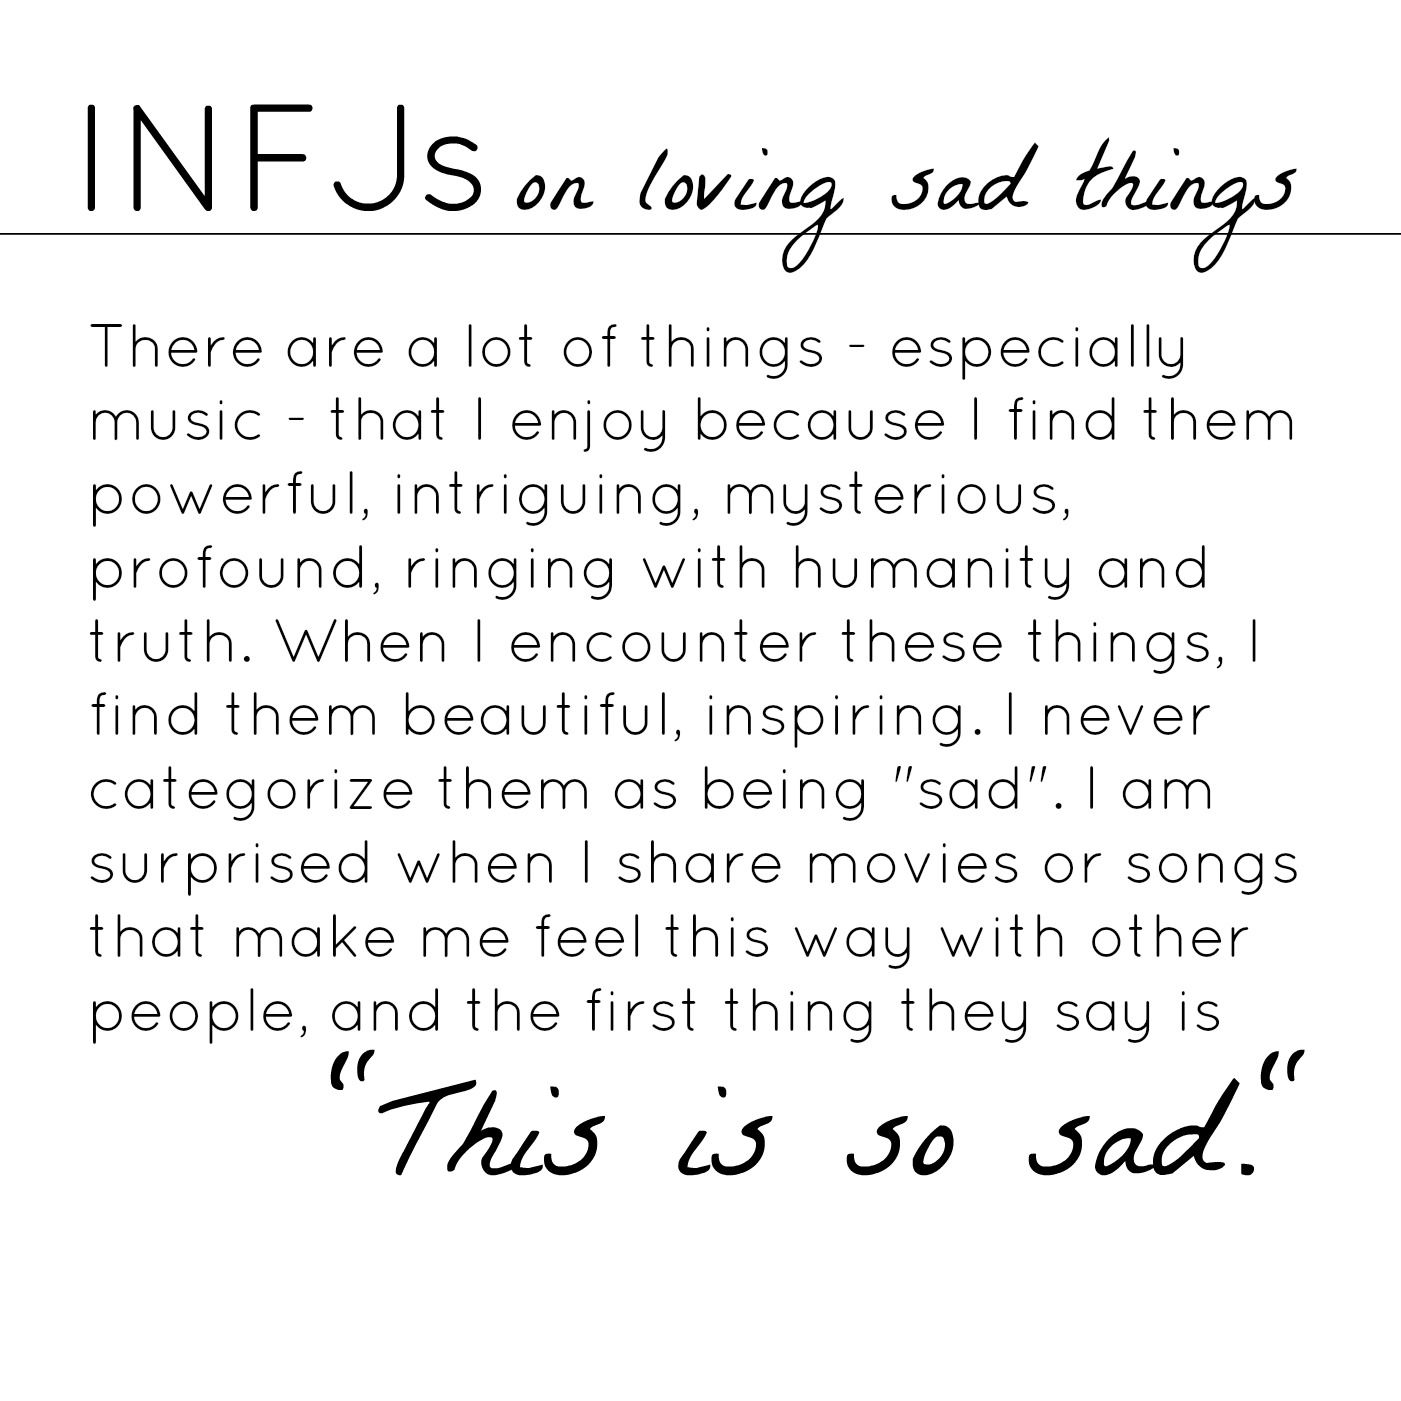 Types Personalities Beyond: INFJs On Their Fascination With Sad Things